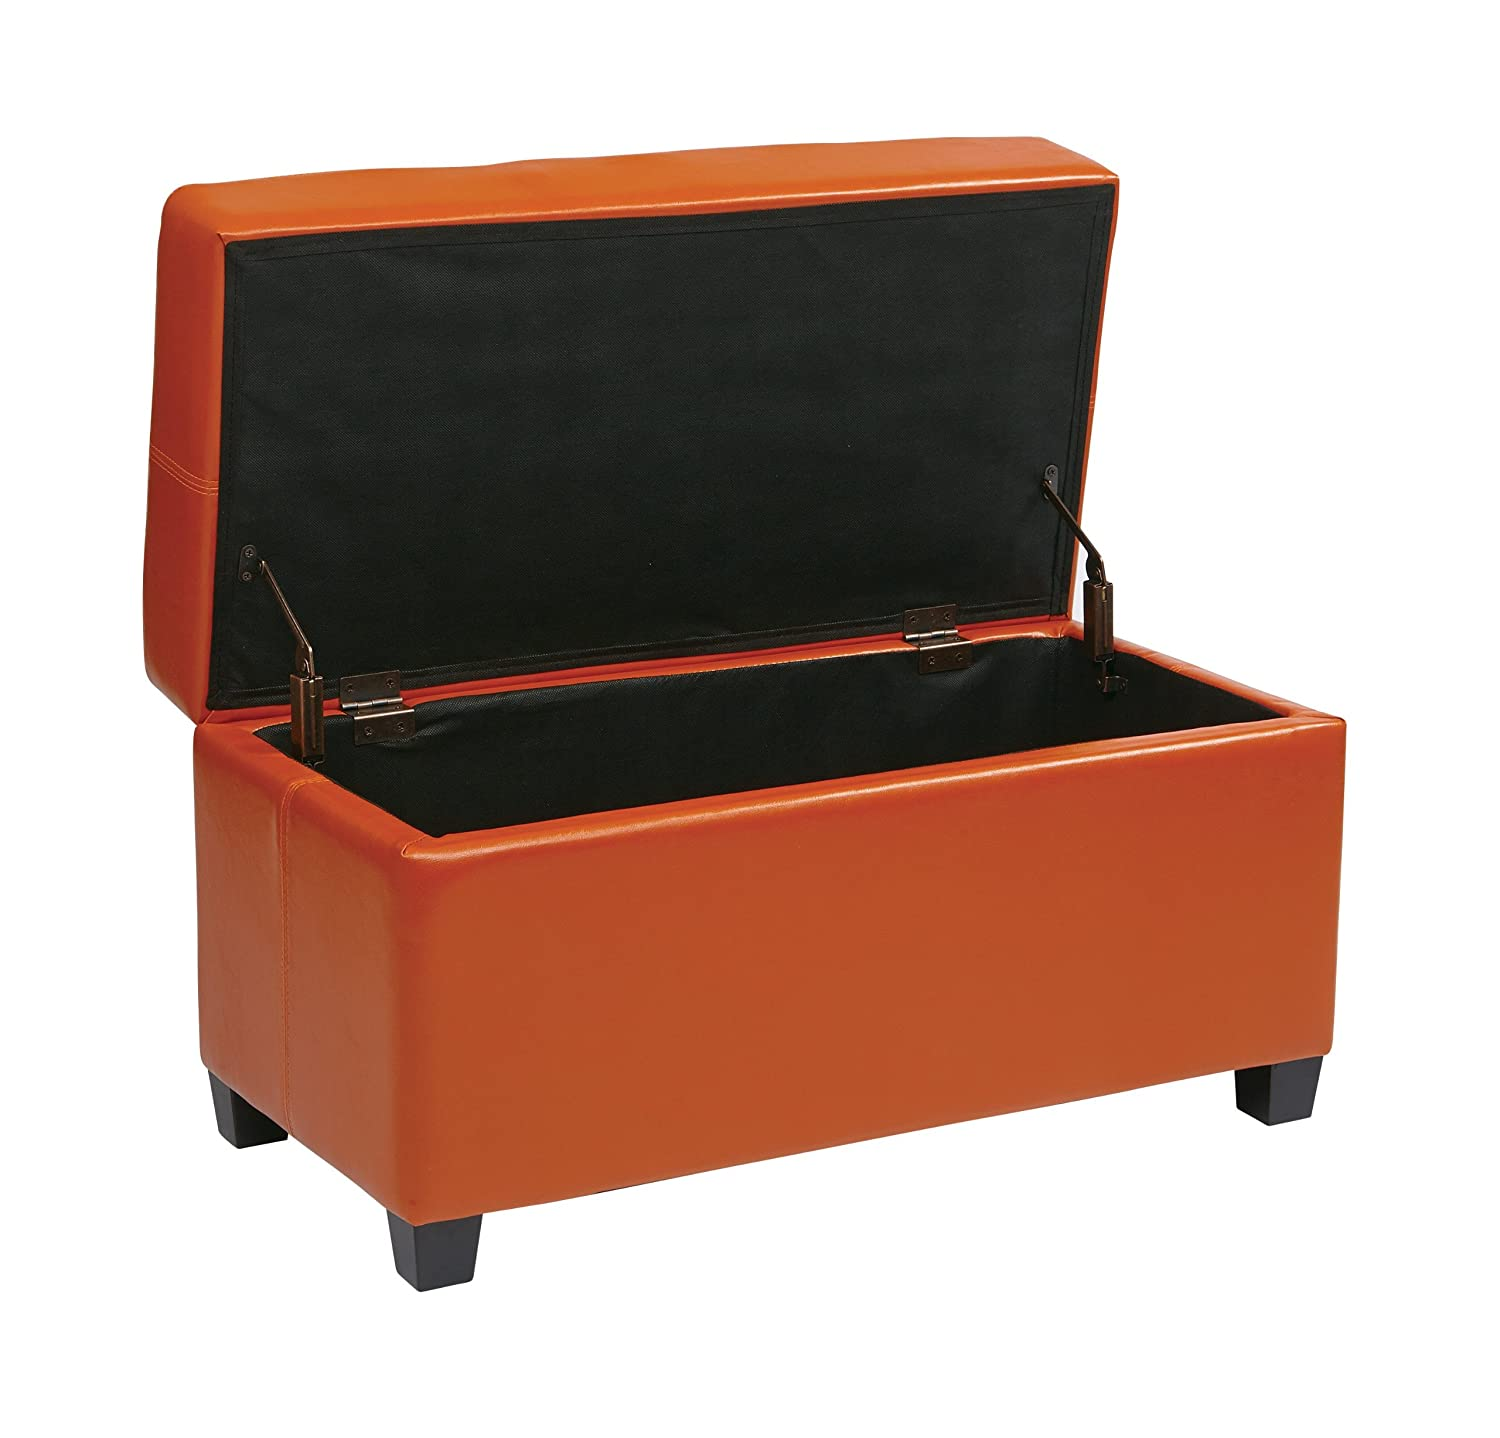 amazoncom office star metro vinyl storage ottoman with espresso  - amazoncom office star metro vinyl storage ottoman with espresso finishlegs orange kitchen  dining